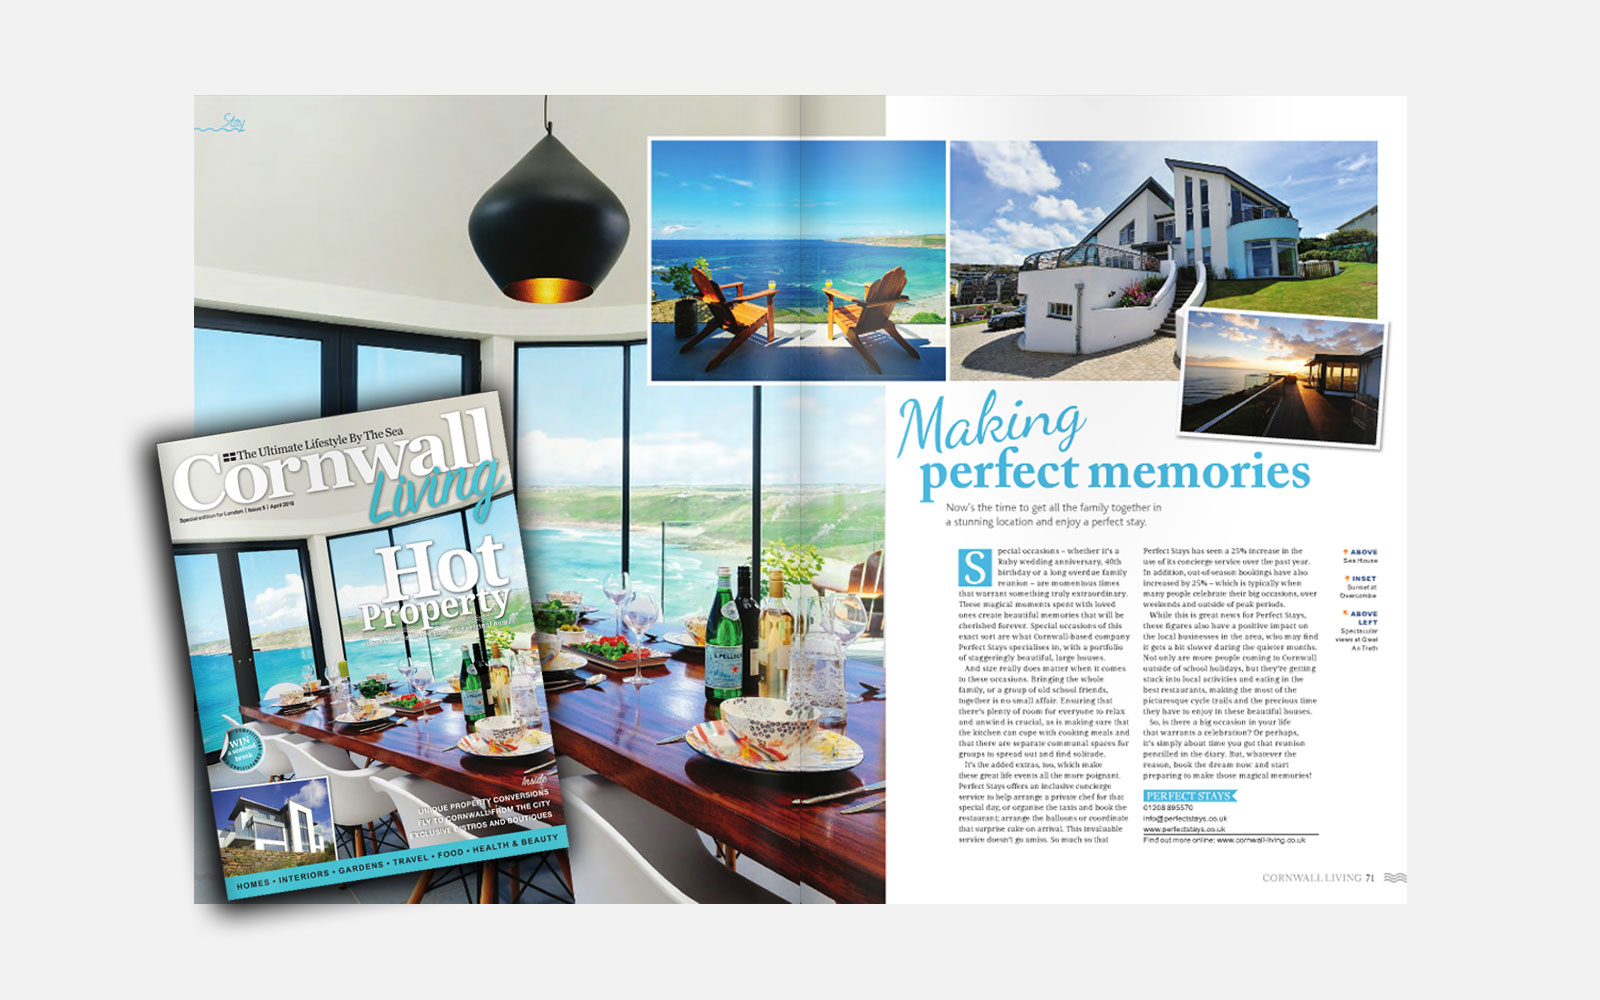 cornwall living magazine front cover overlaid on top of perfect stays feature article in cornwall living magazine headline making perfect memories